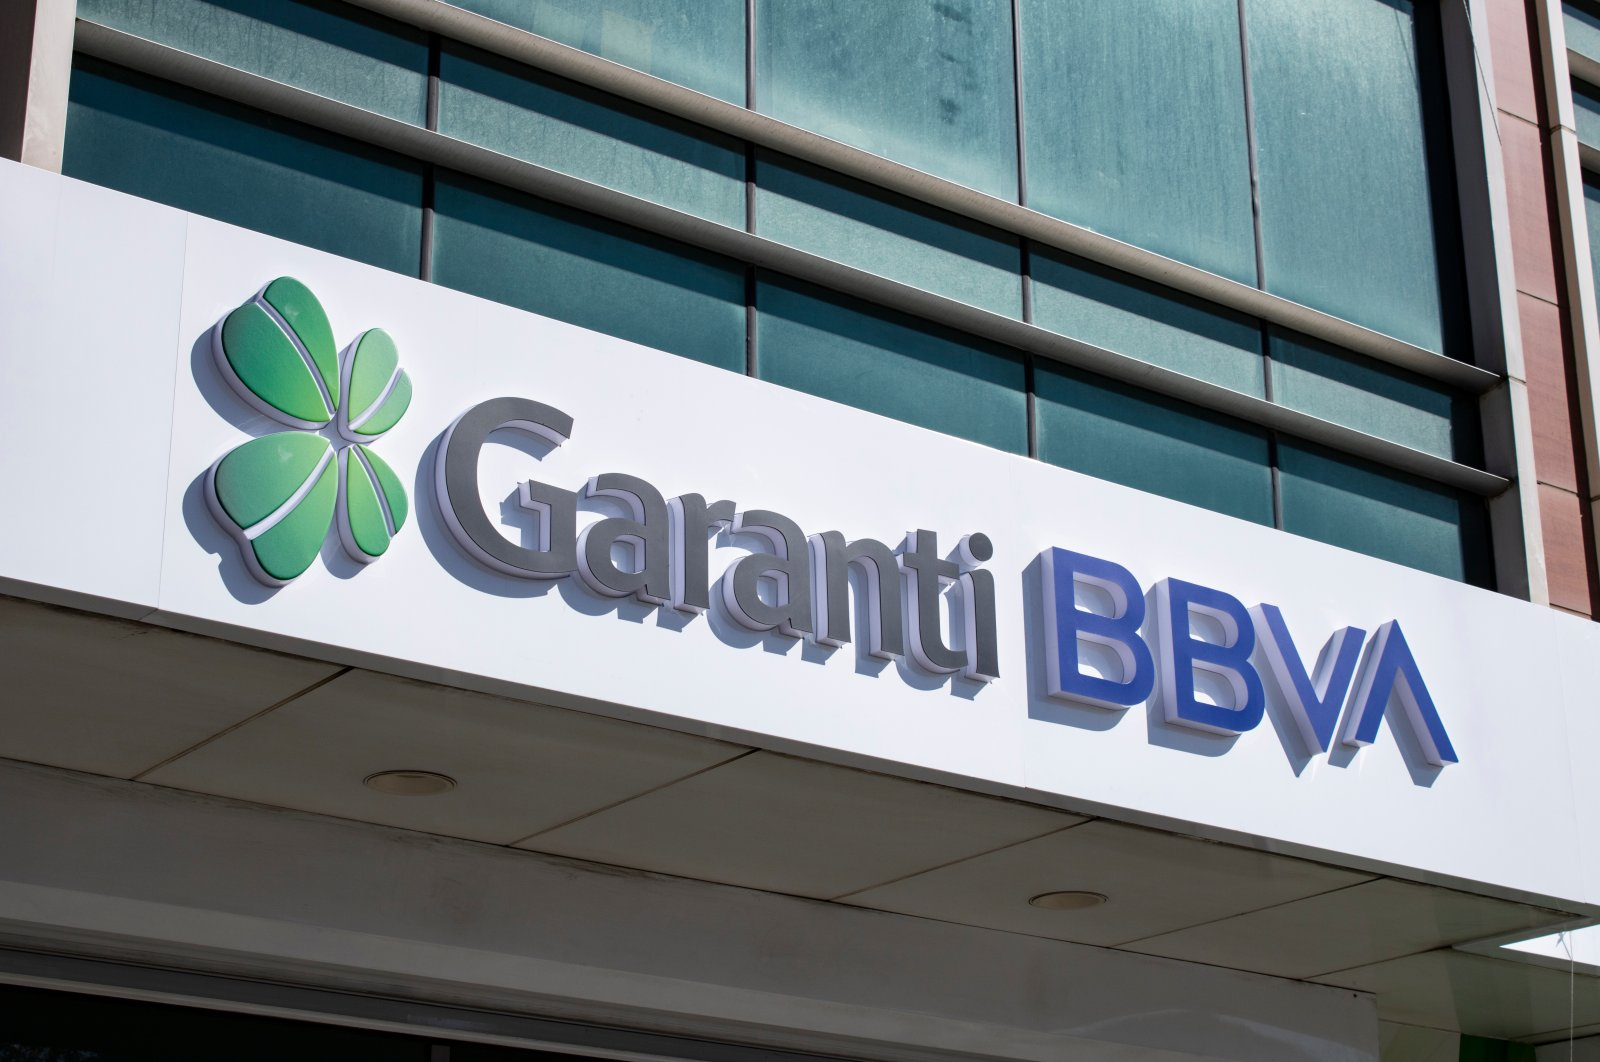 The headquarters of the Garanti BBVA in Beşiktaş, Istanbul, Turkey, Nov. 10, 2019. (Shutterstock Photo)